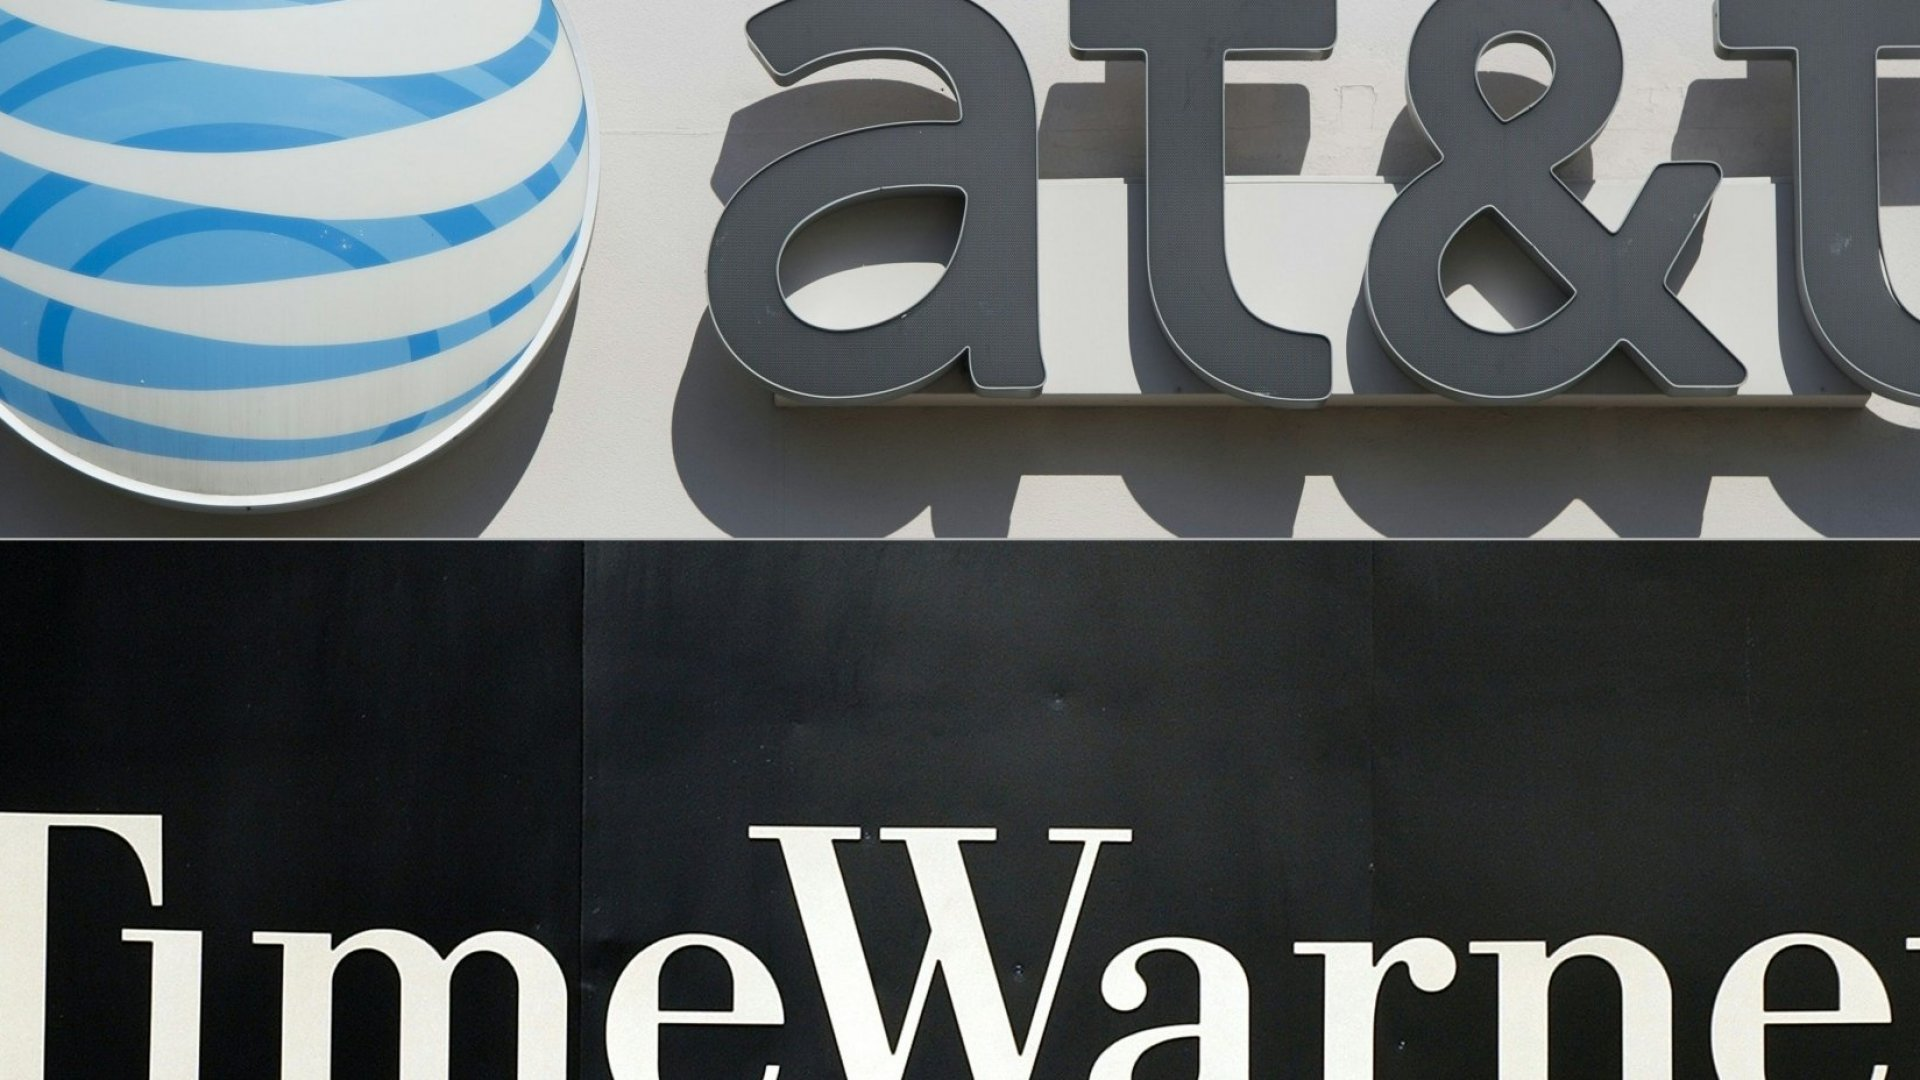 What AT&T Should Watch For After the Time Warner Acquisition